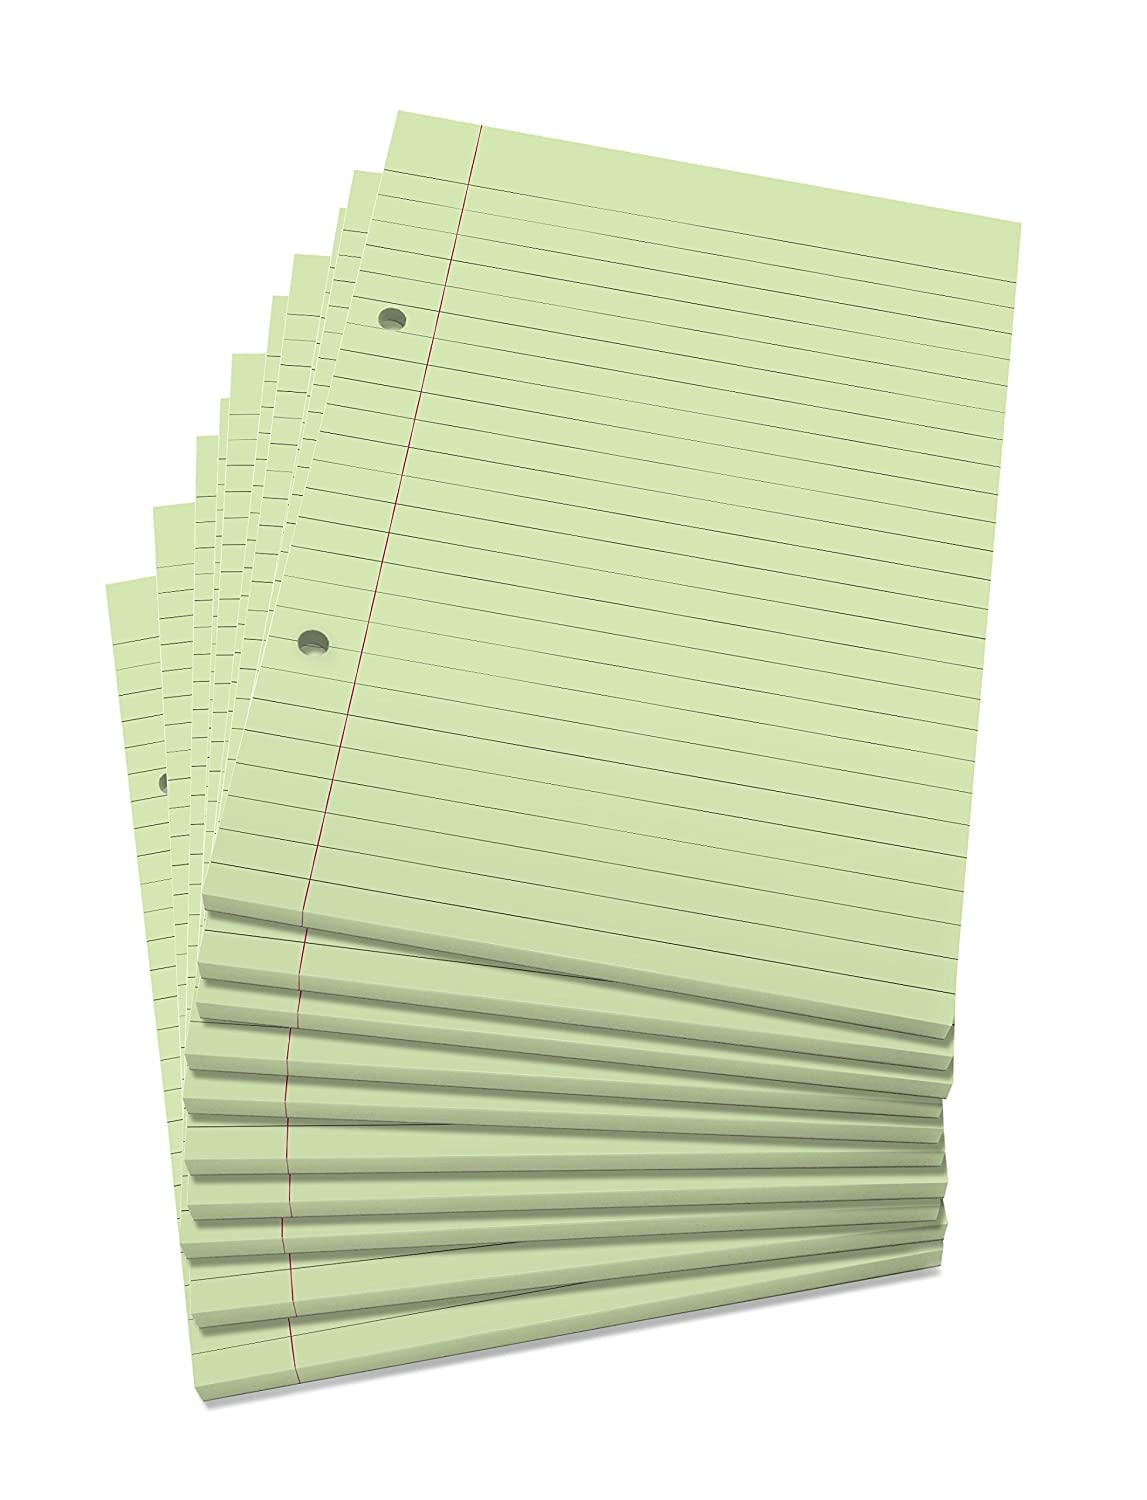 Bloc-notes formato A5, A5 Yellow Parent